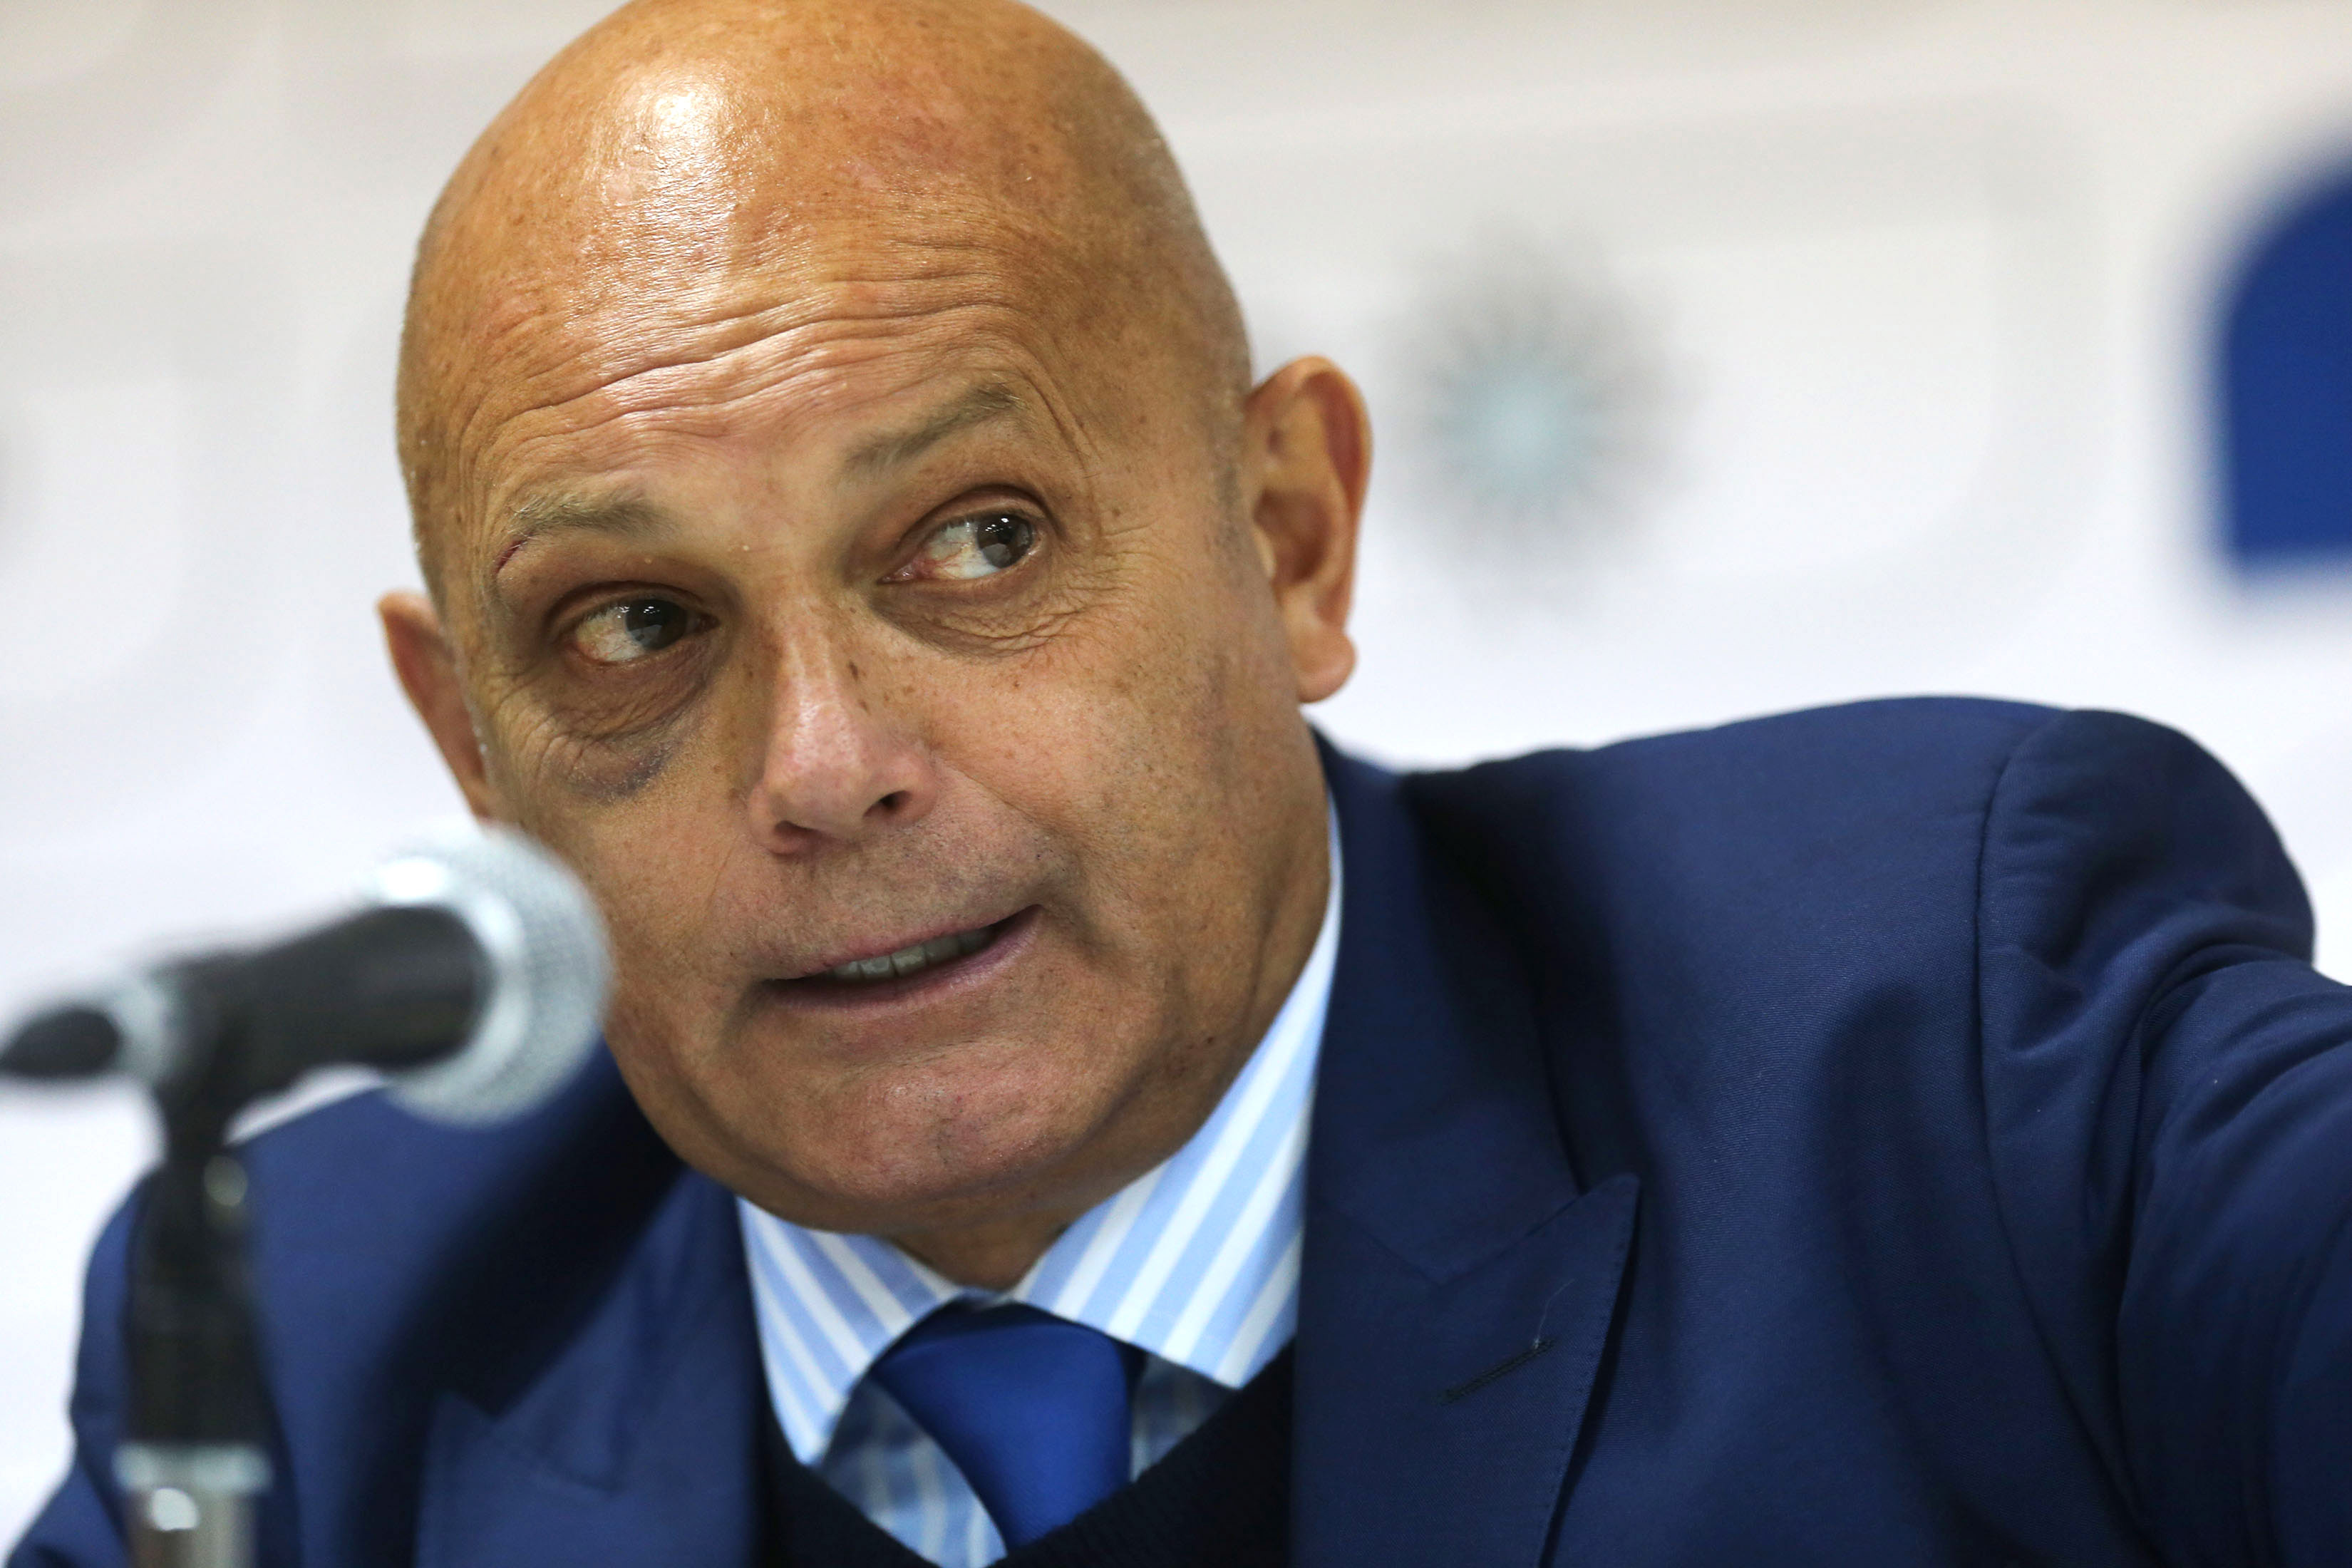 Ray Wilkins played for AC Milan and PSG yet seems to see no room for foreign players in English football.